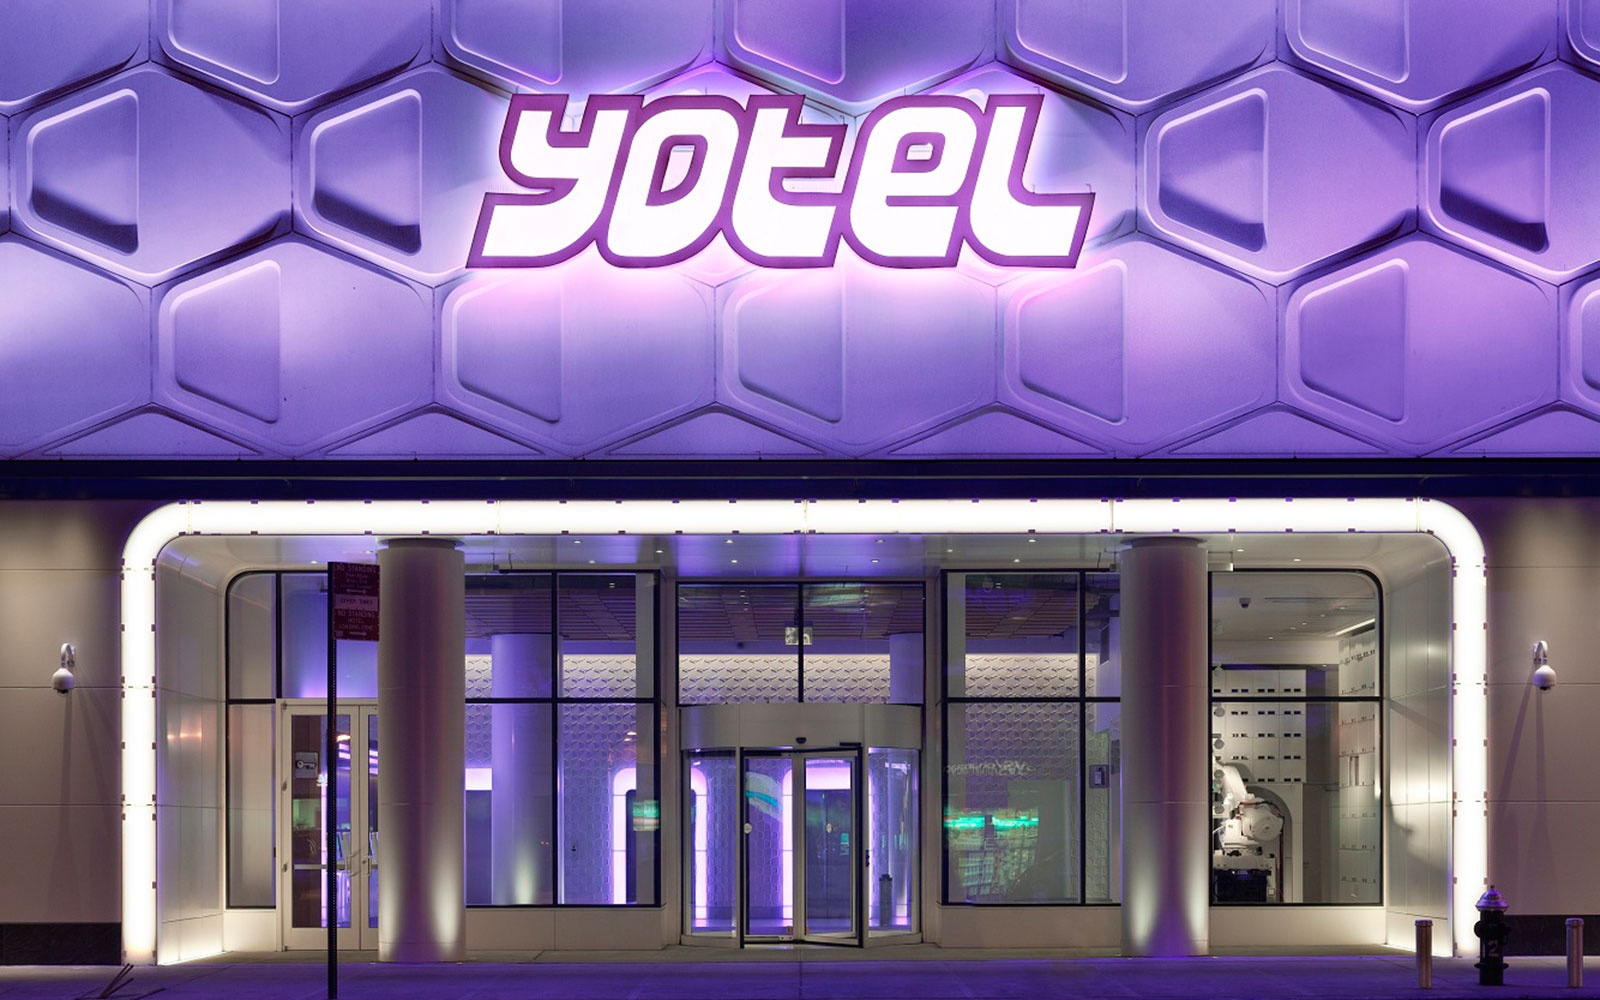 YOTEL in New York City